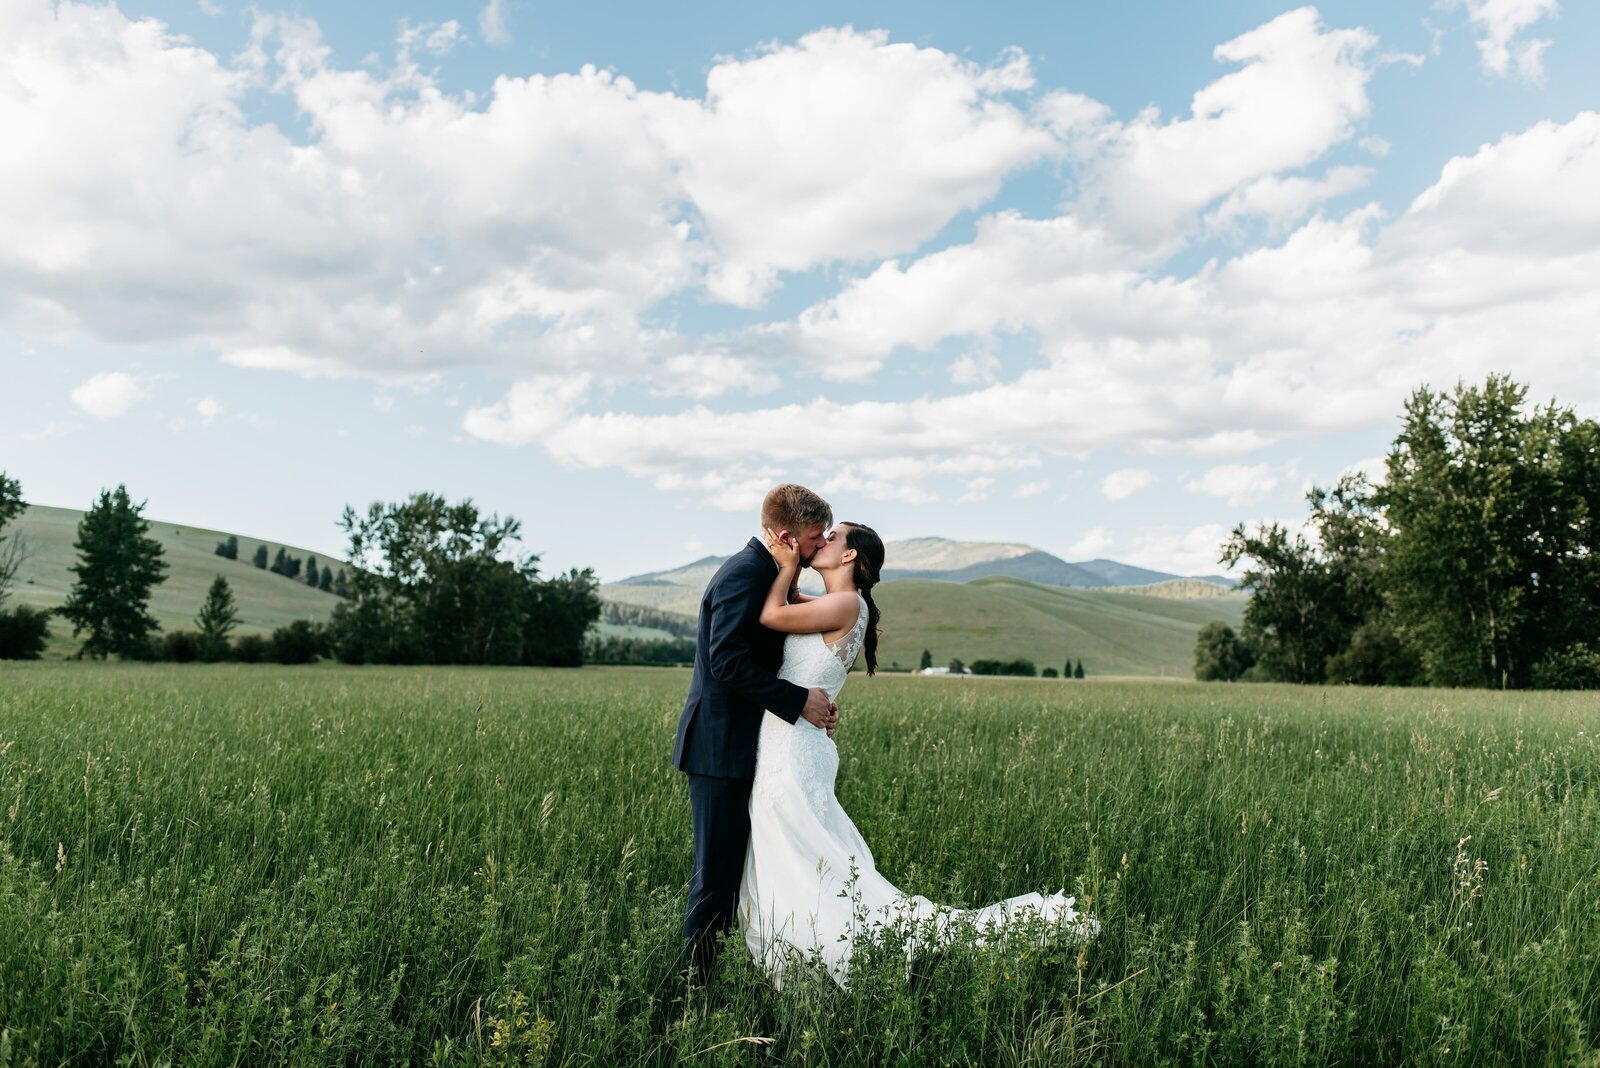 Missoula Wedding Photography Montana Wedding Photographer Destination Wedding Photography-11-min